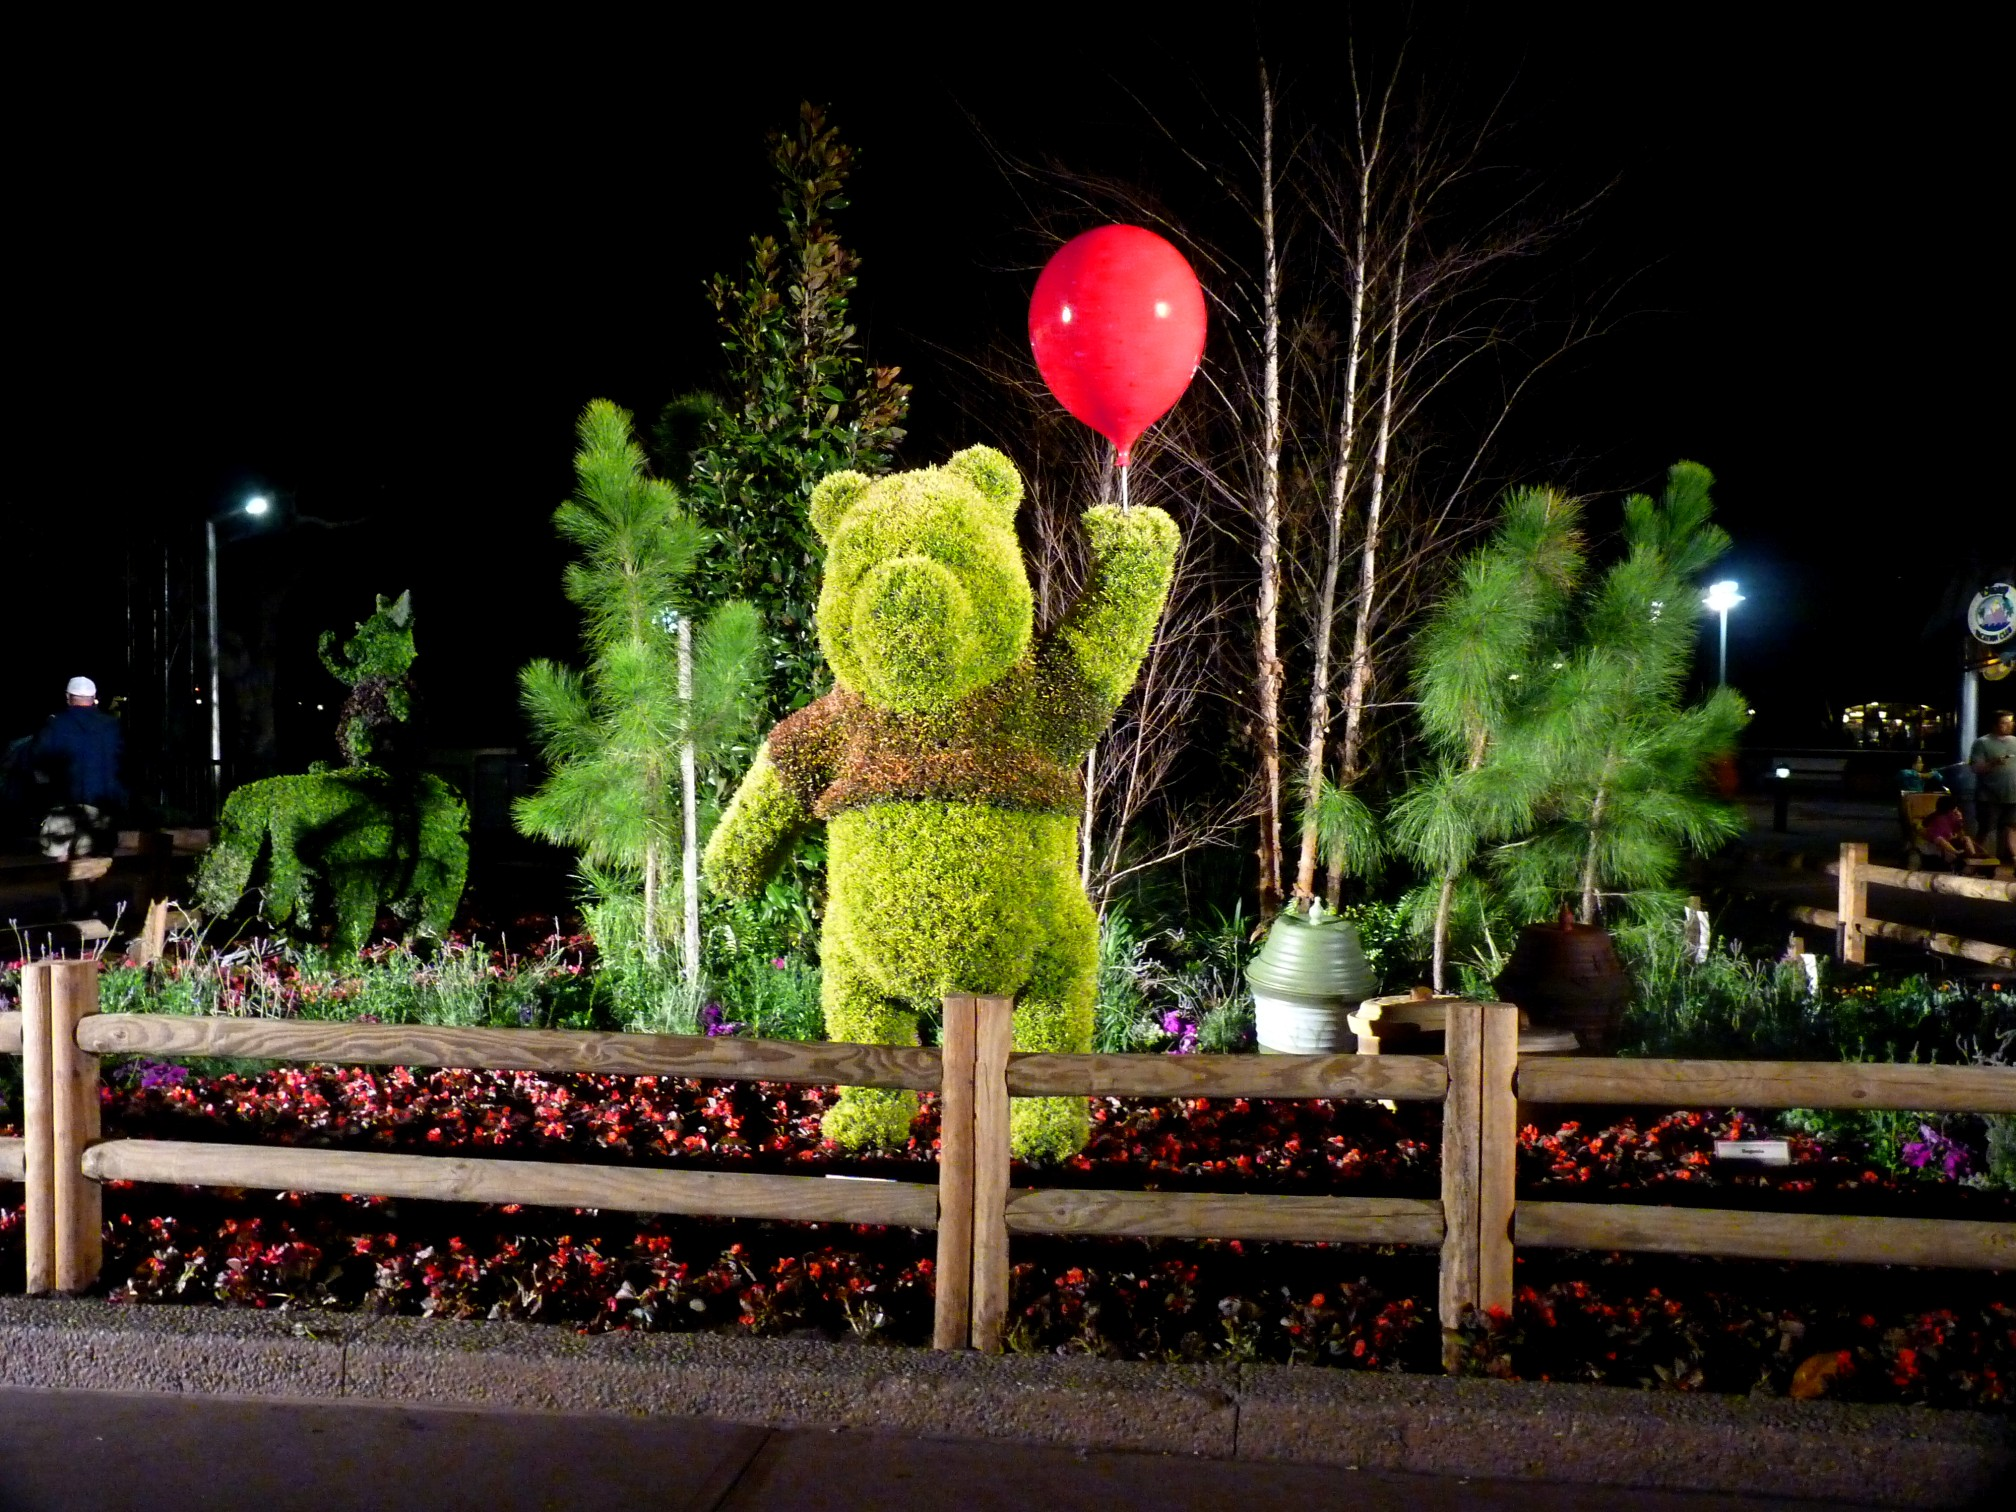 Jud's Disney Picture of the Day: POOH AT NIGHT